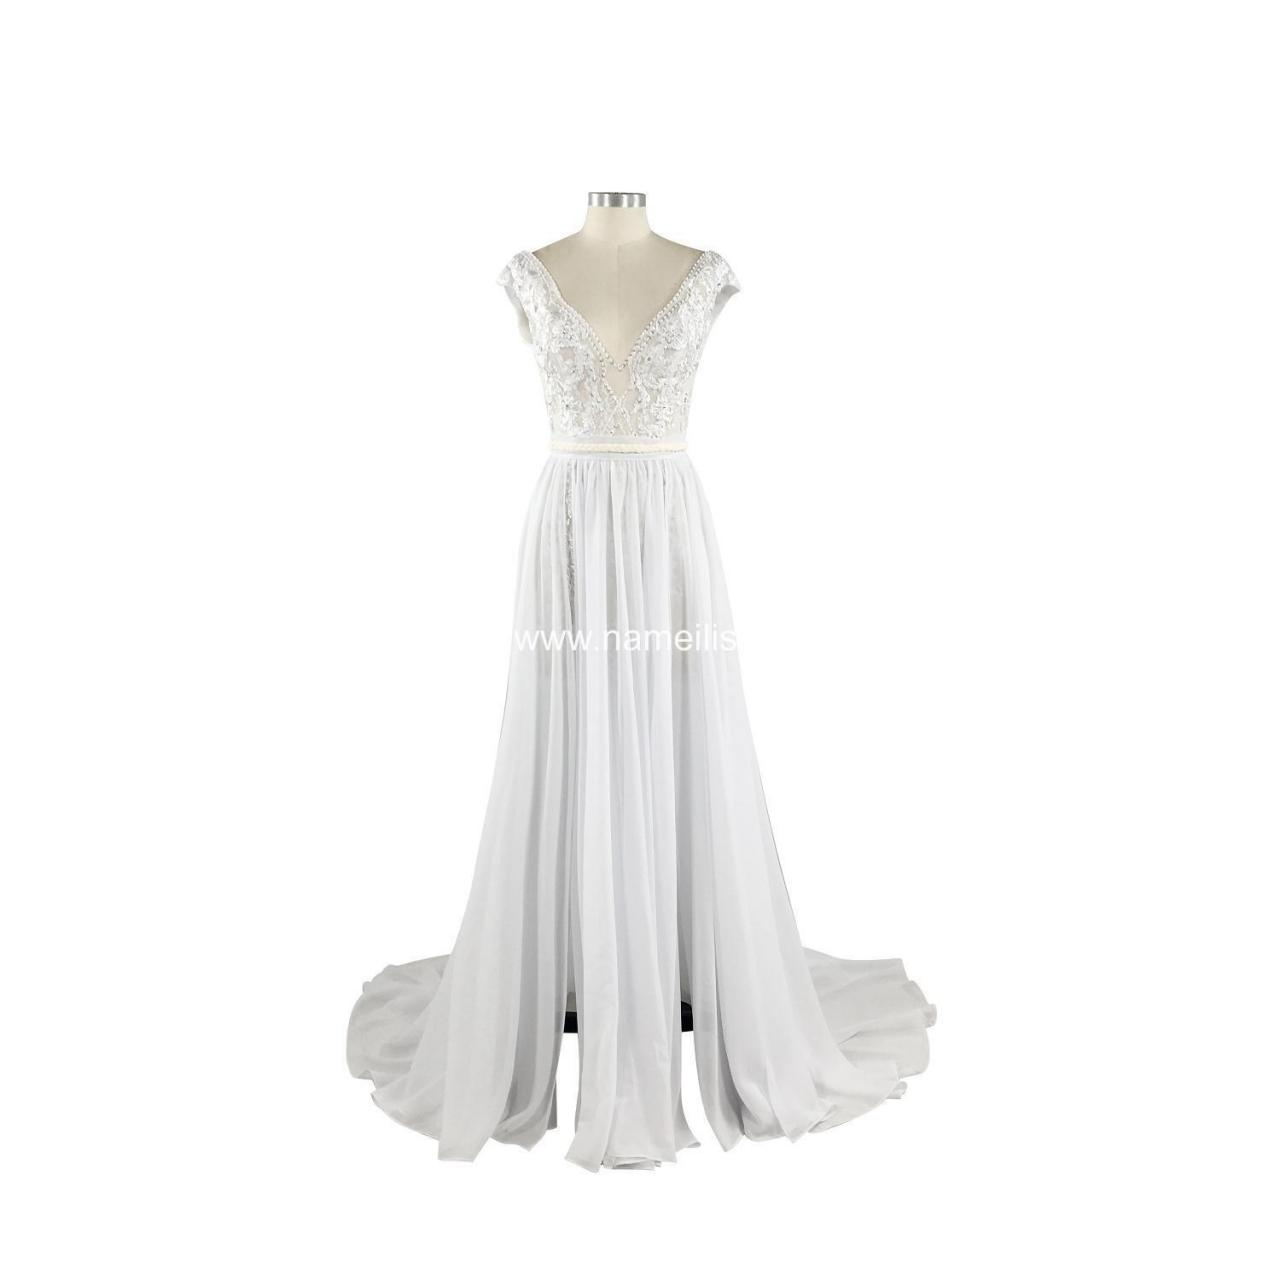 Quality A-Line Wedding Dress (10) SKU: L5107 - In Stock for sale